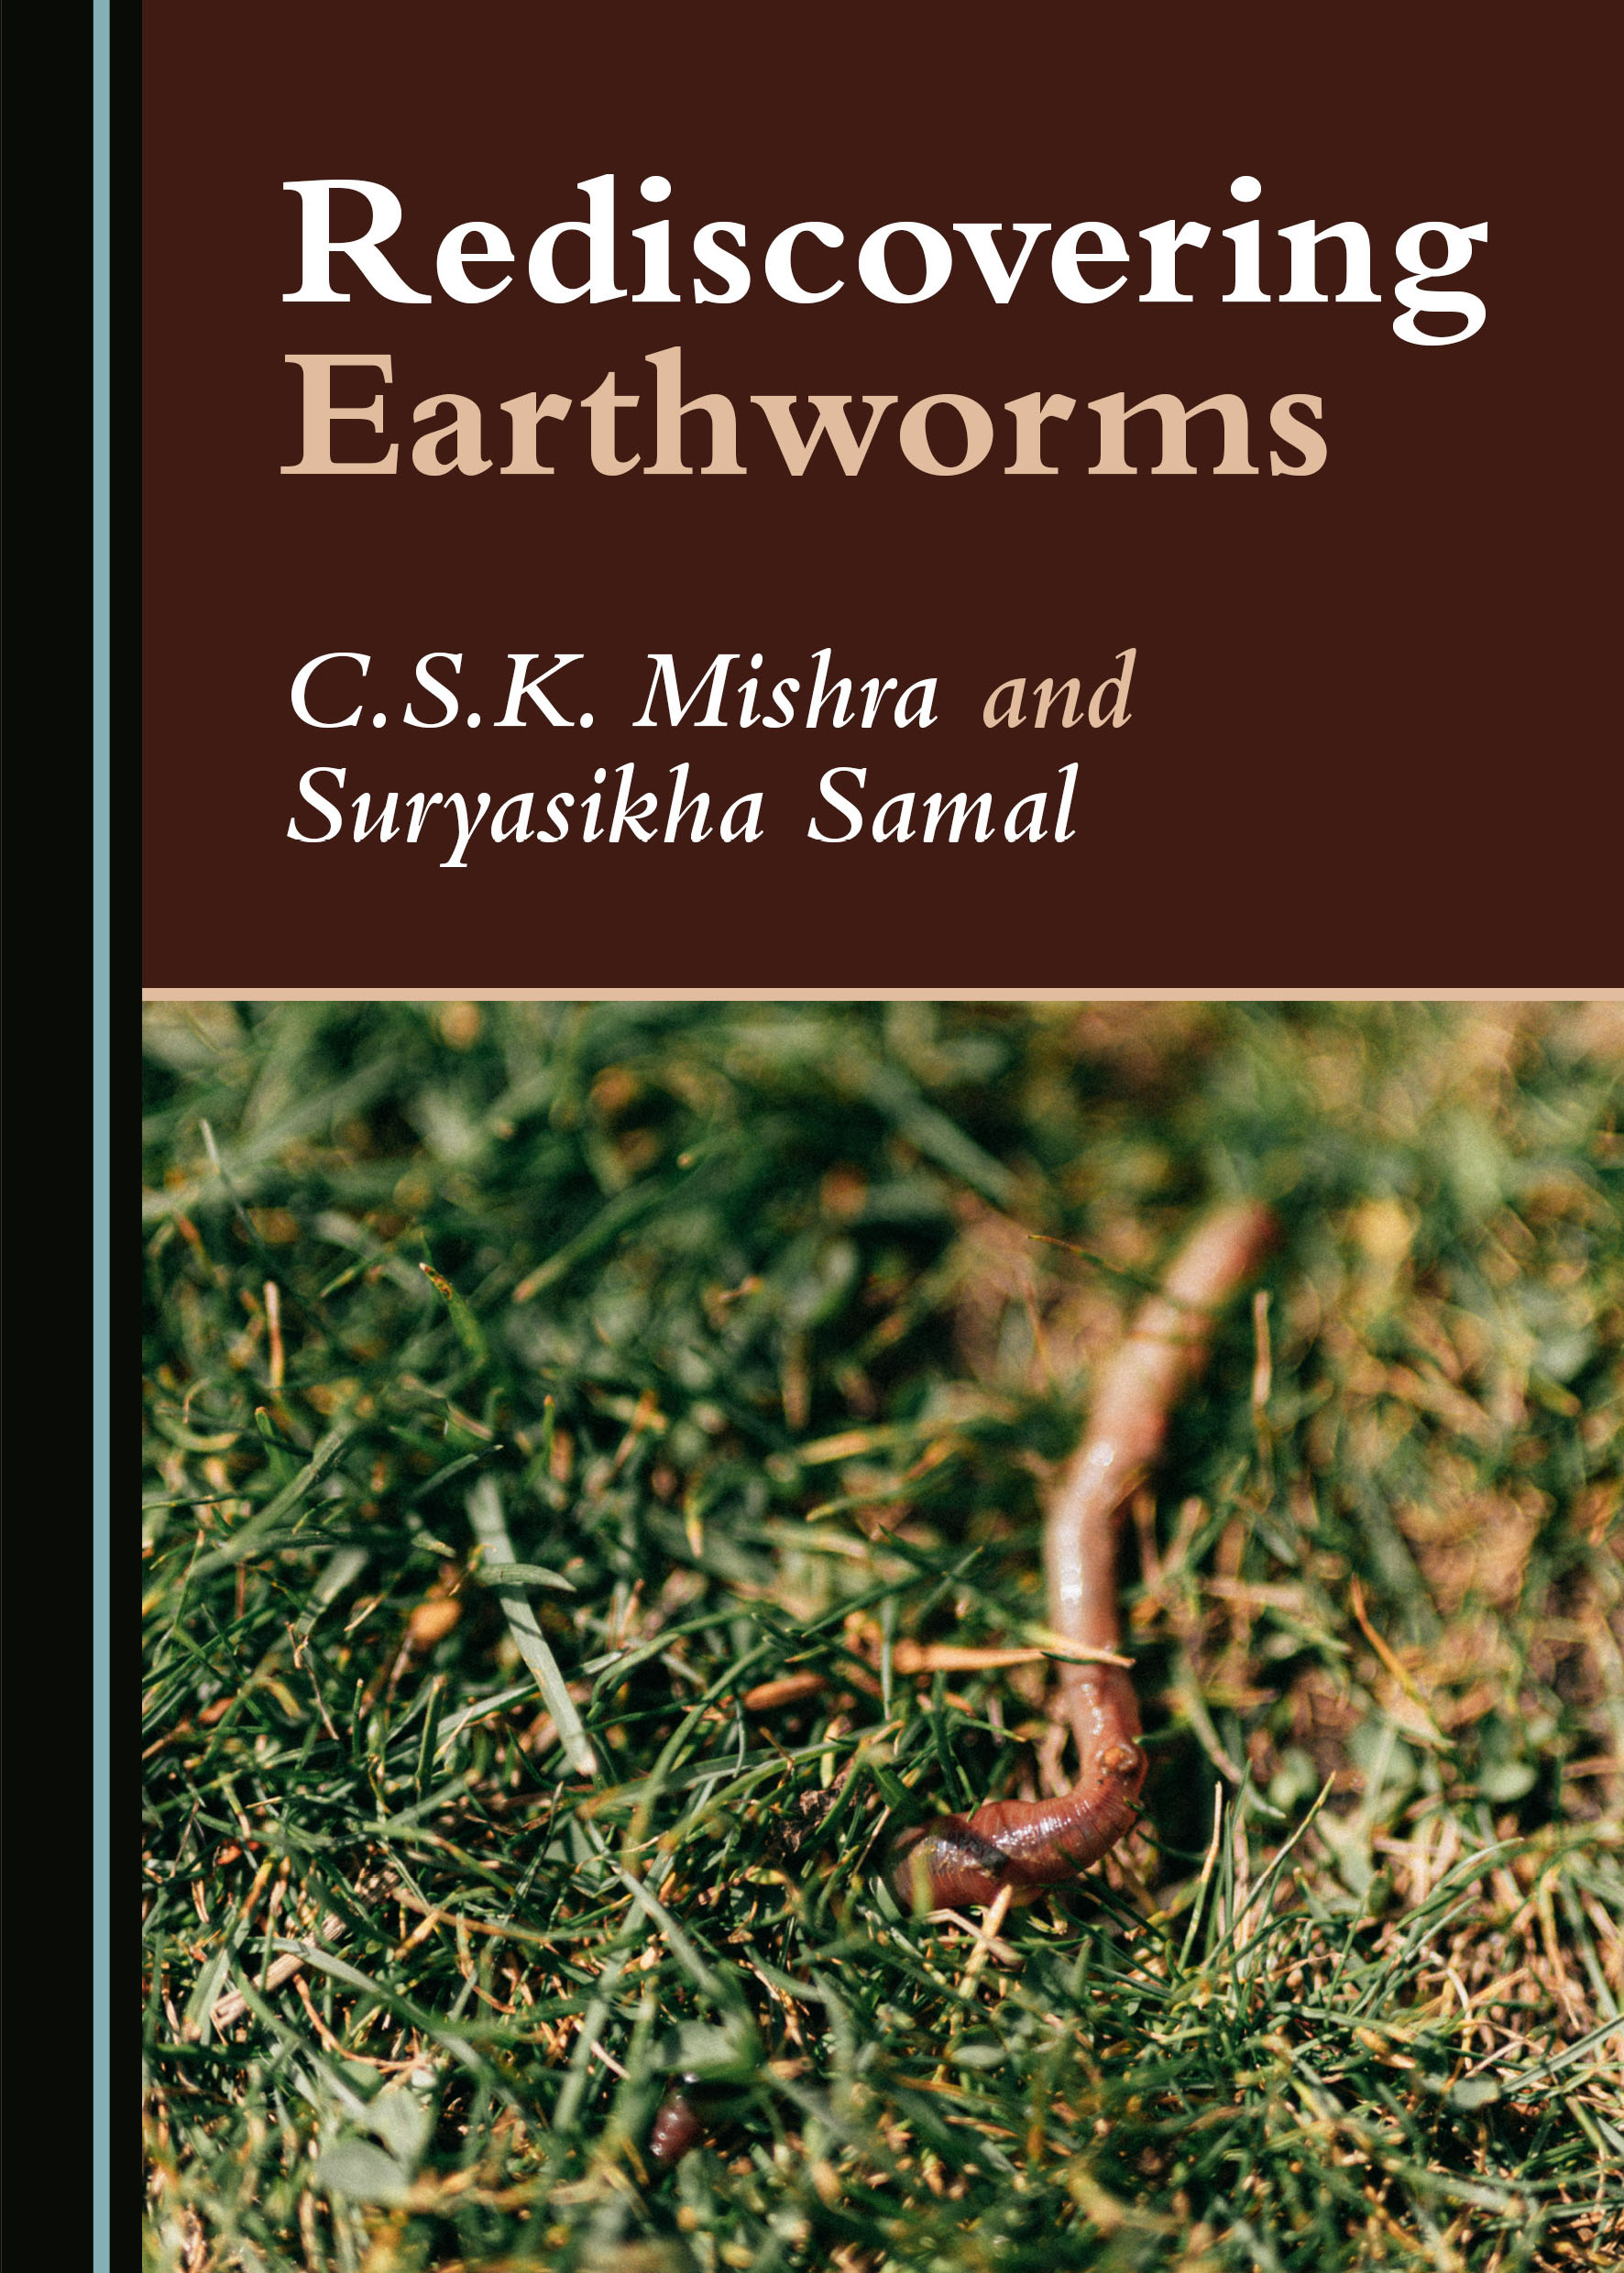 Rediscovering Earthworms